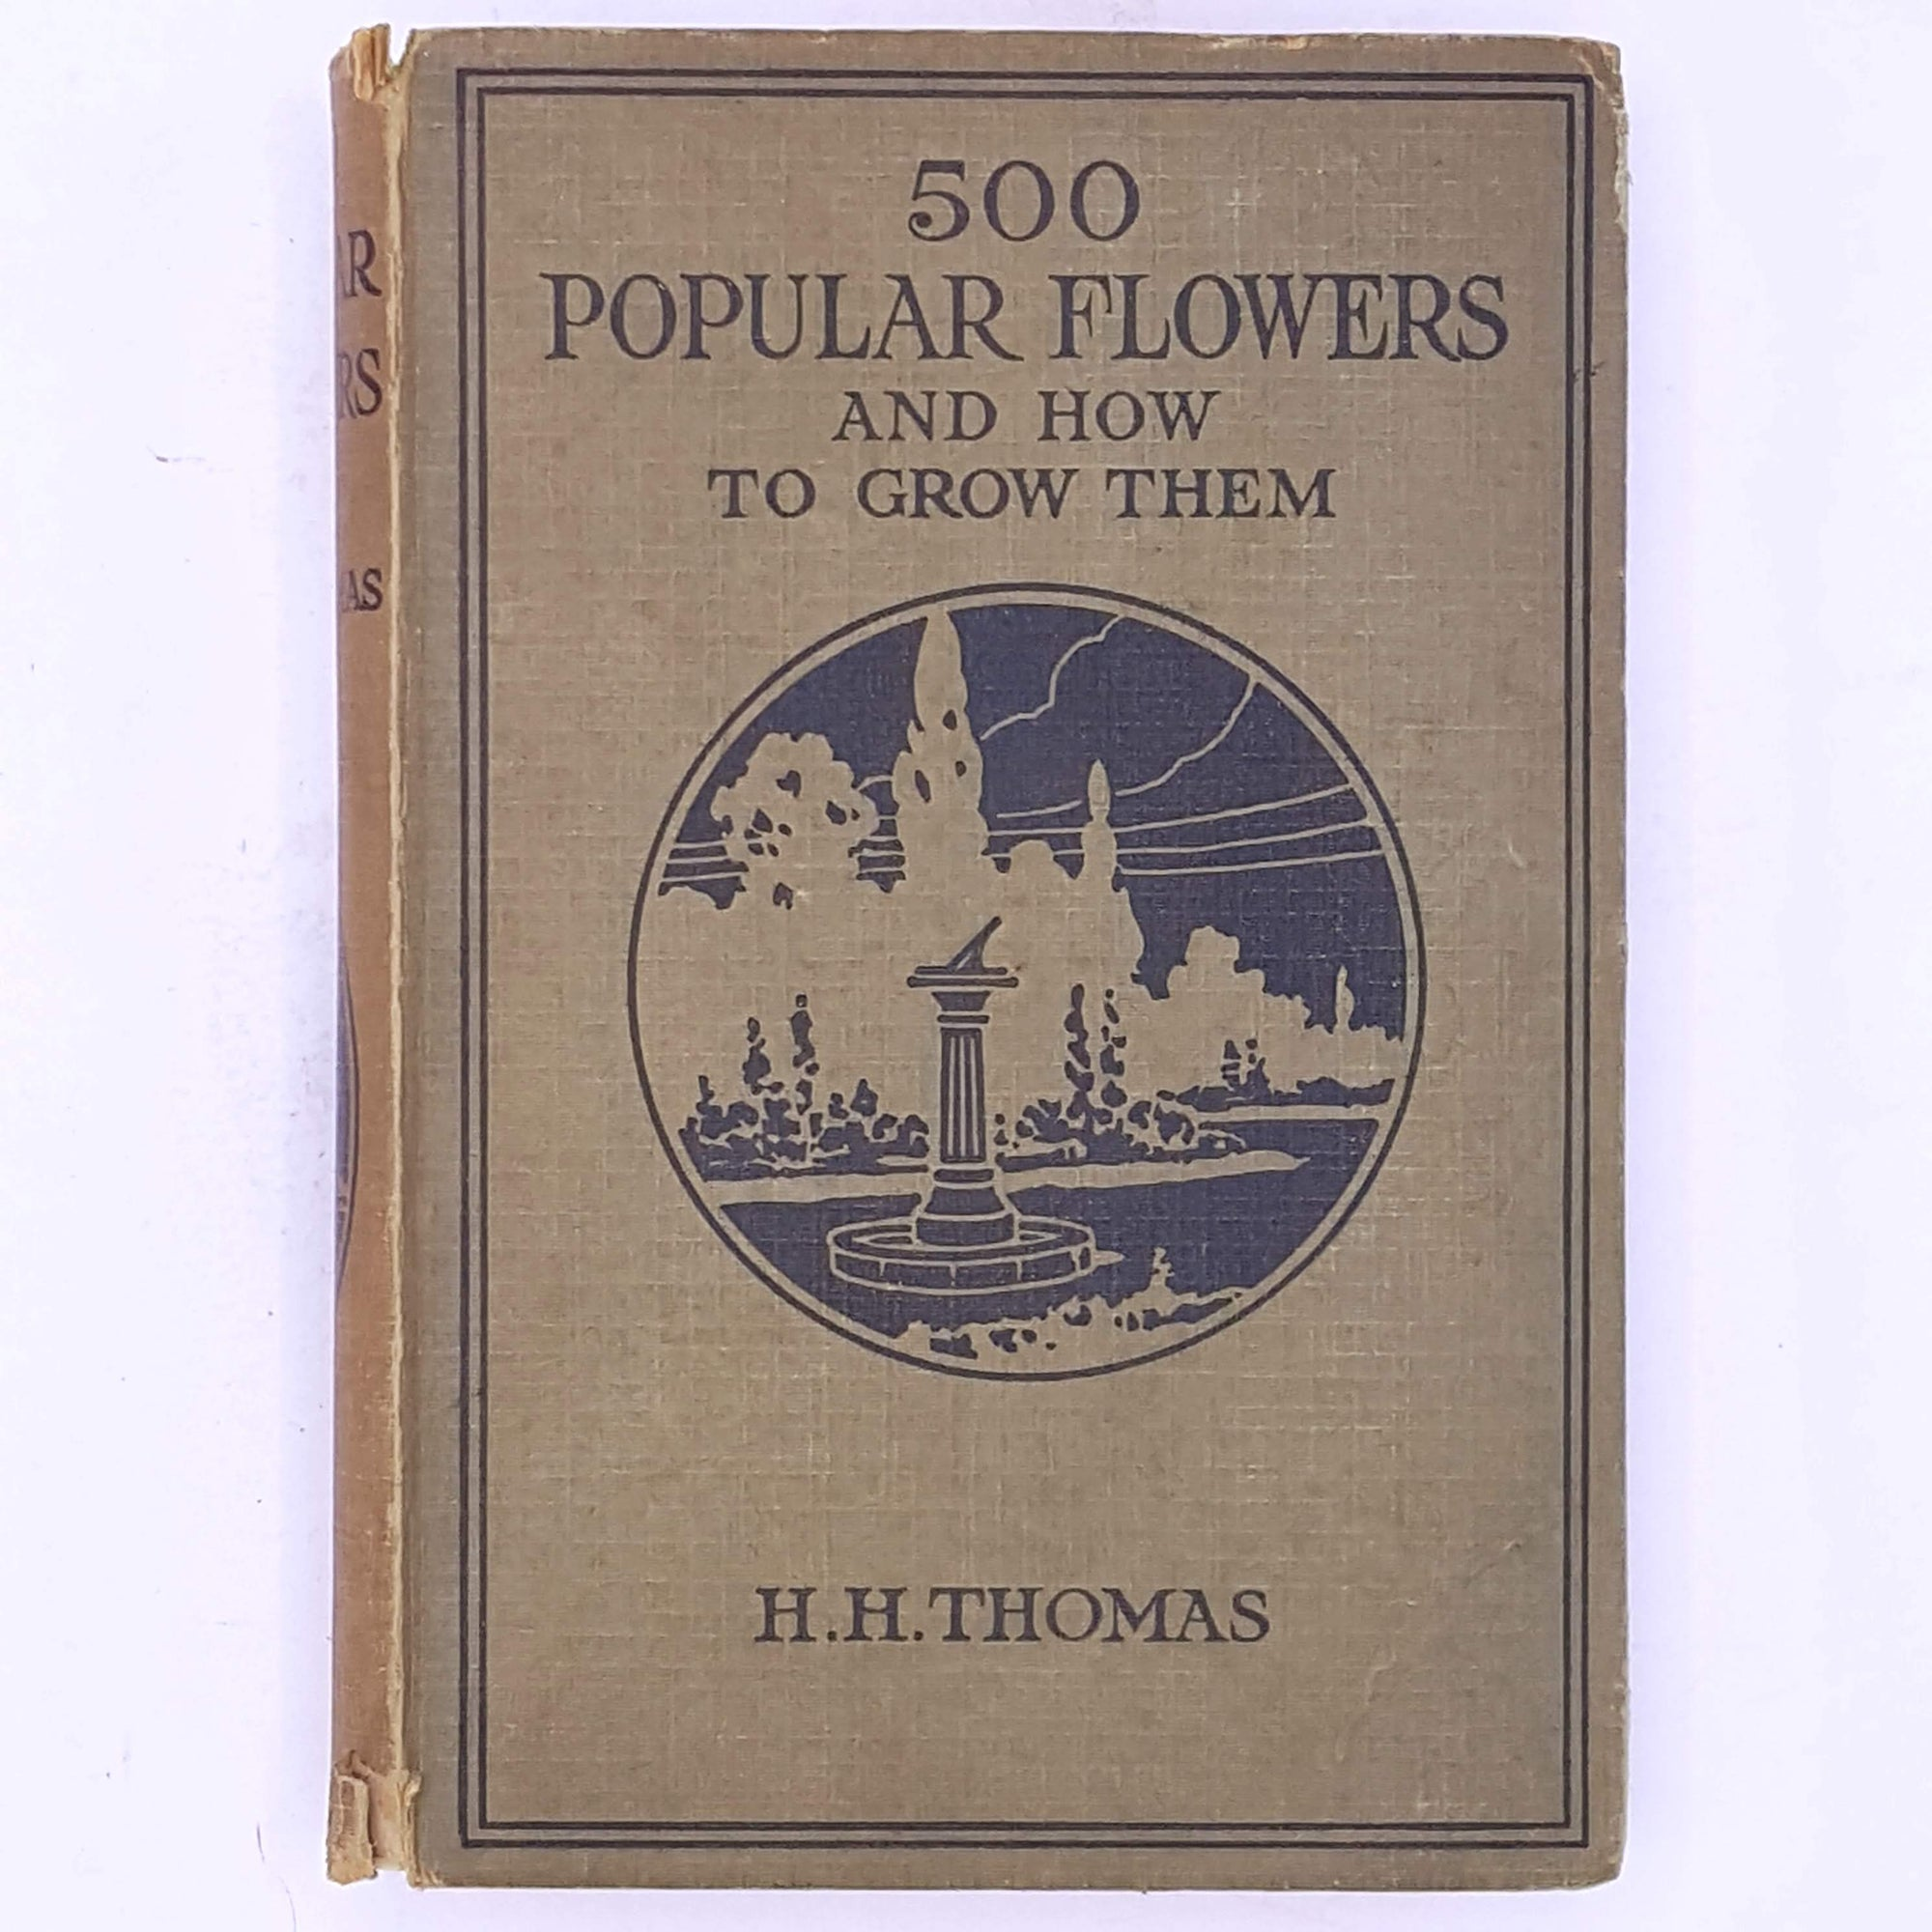 500 Popular Flowers and How To Grow Them H.H. Thomas